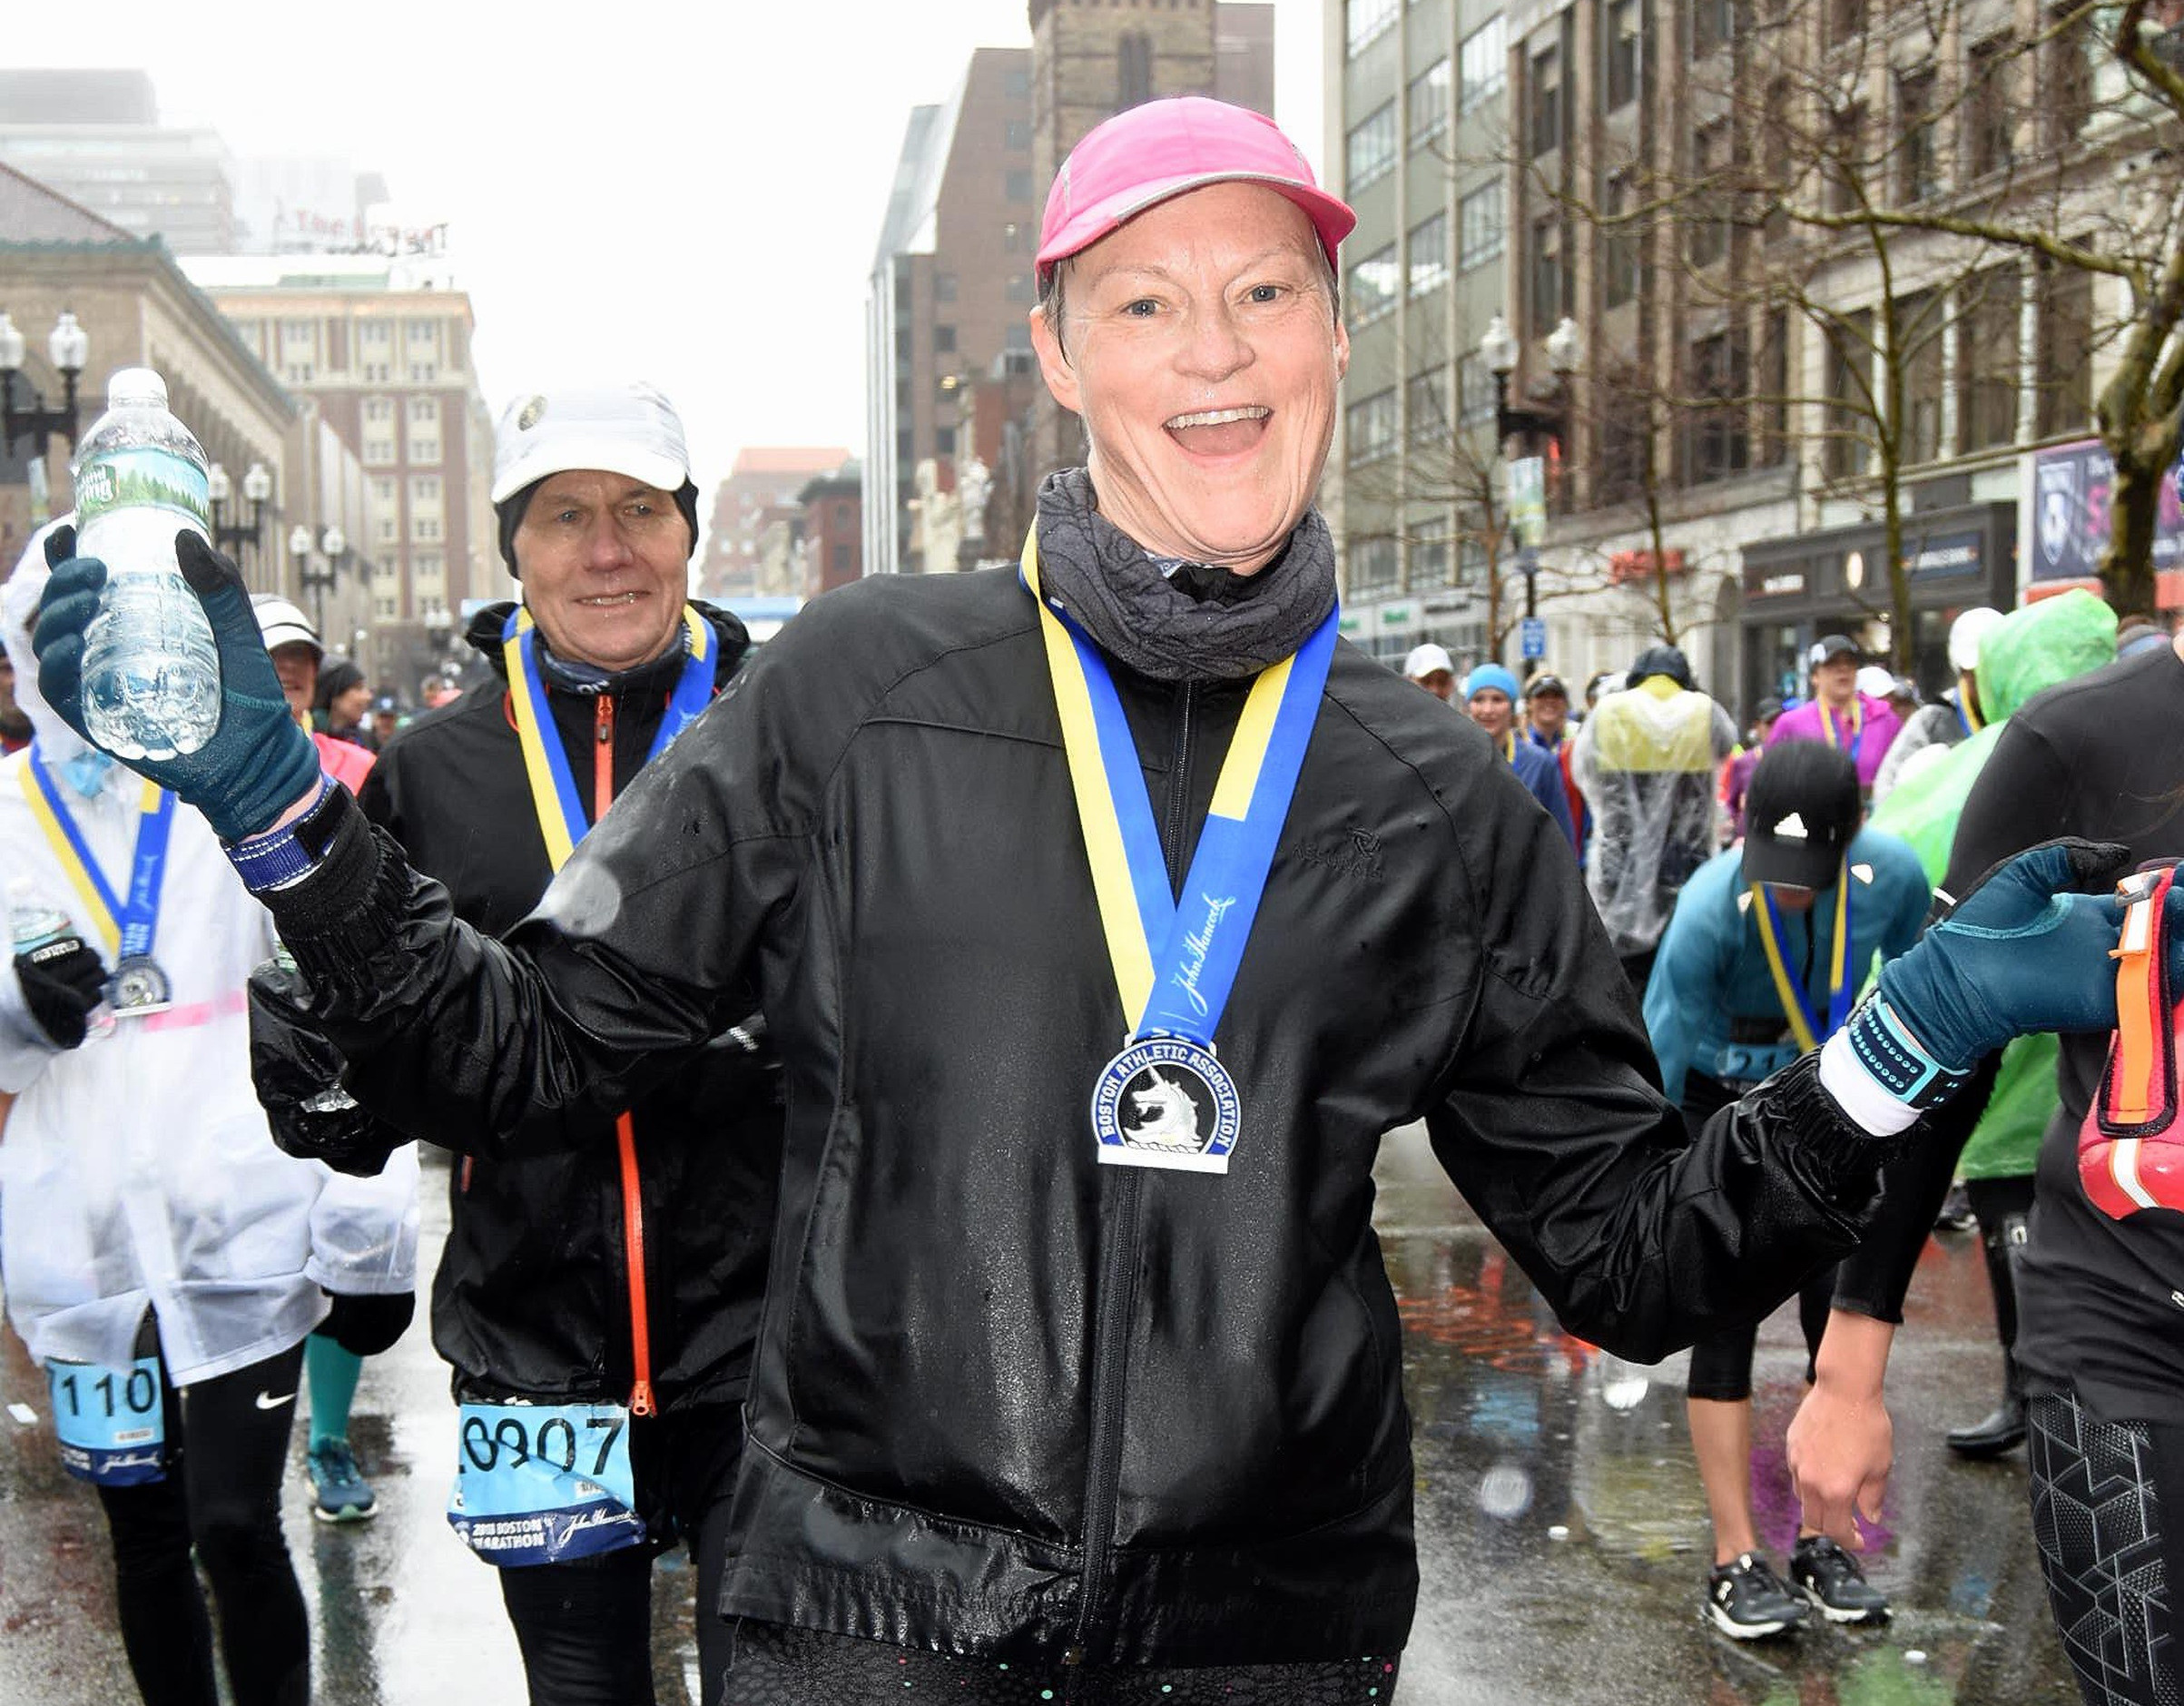 Global Run Challenge Profile: Kati Toivanen is an accomplished artist and a devoted marathoner